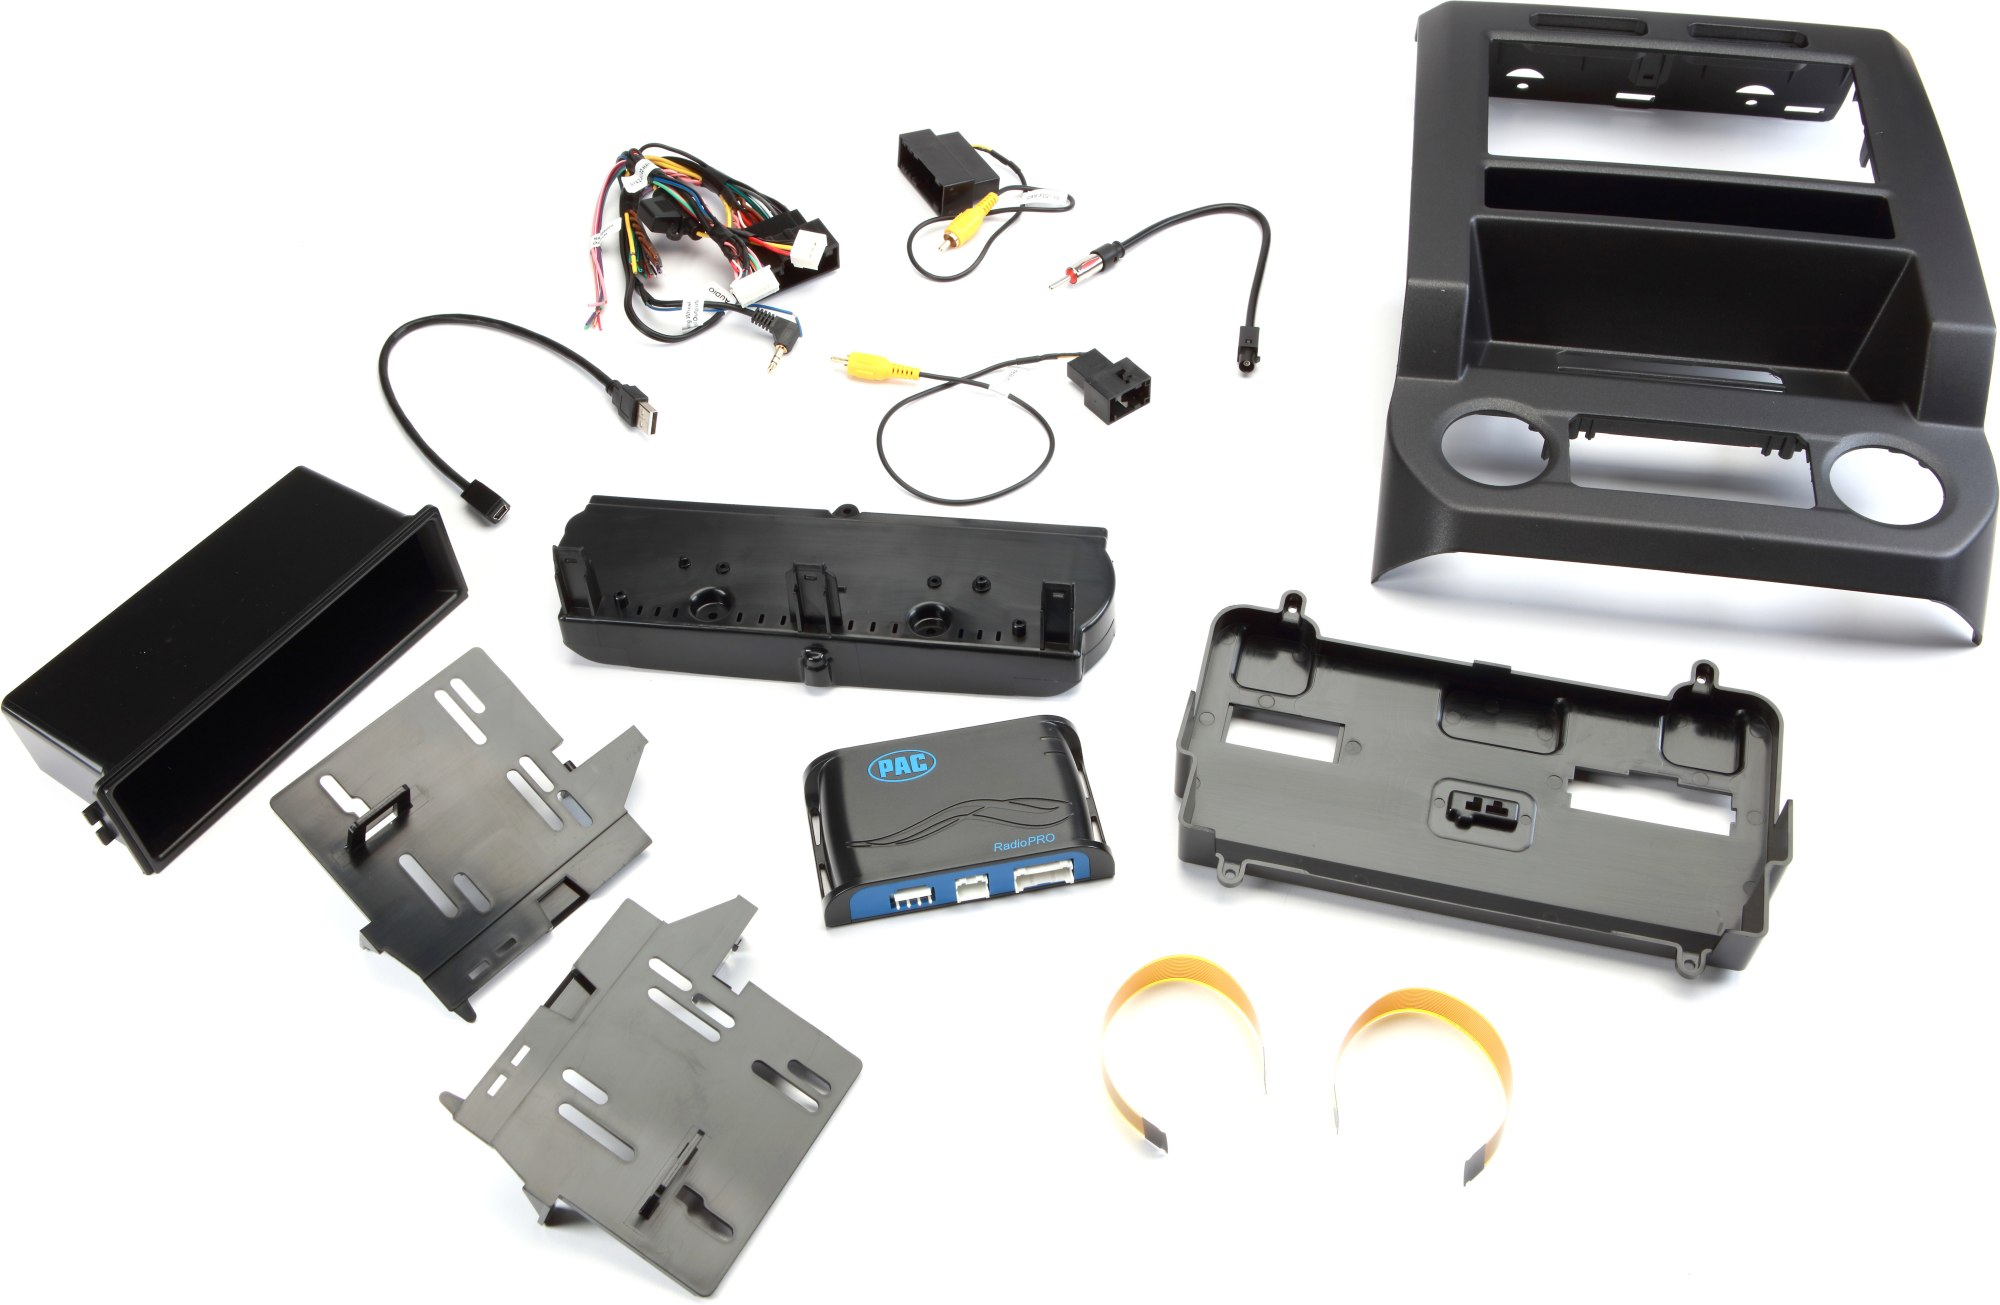 hight resolution of pac rpk4 fd2201 dash and wiring kit metallic black install and connect a single or double din car stereo and retain climate controls and other features